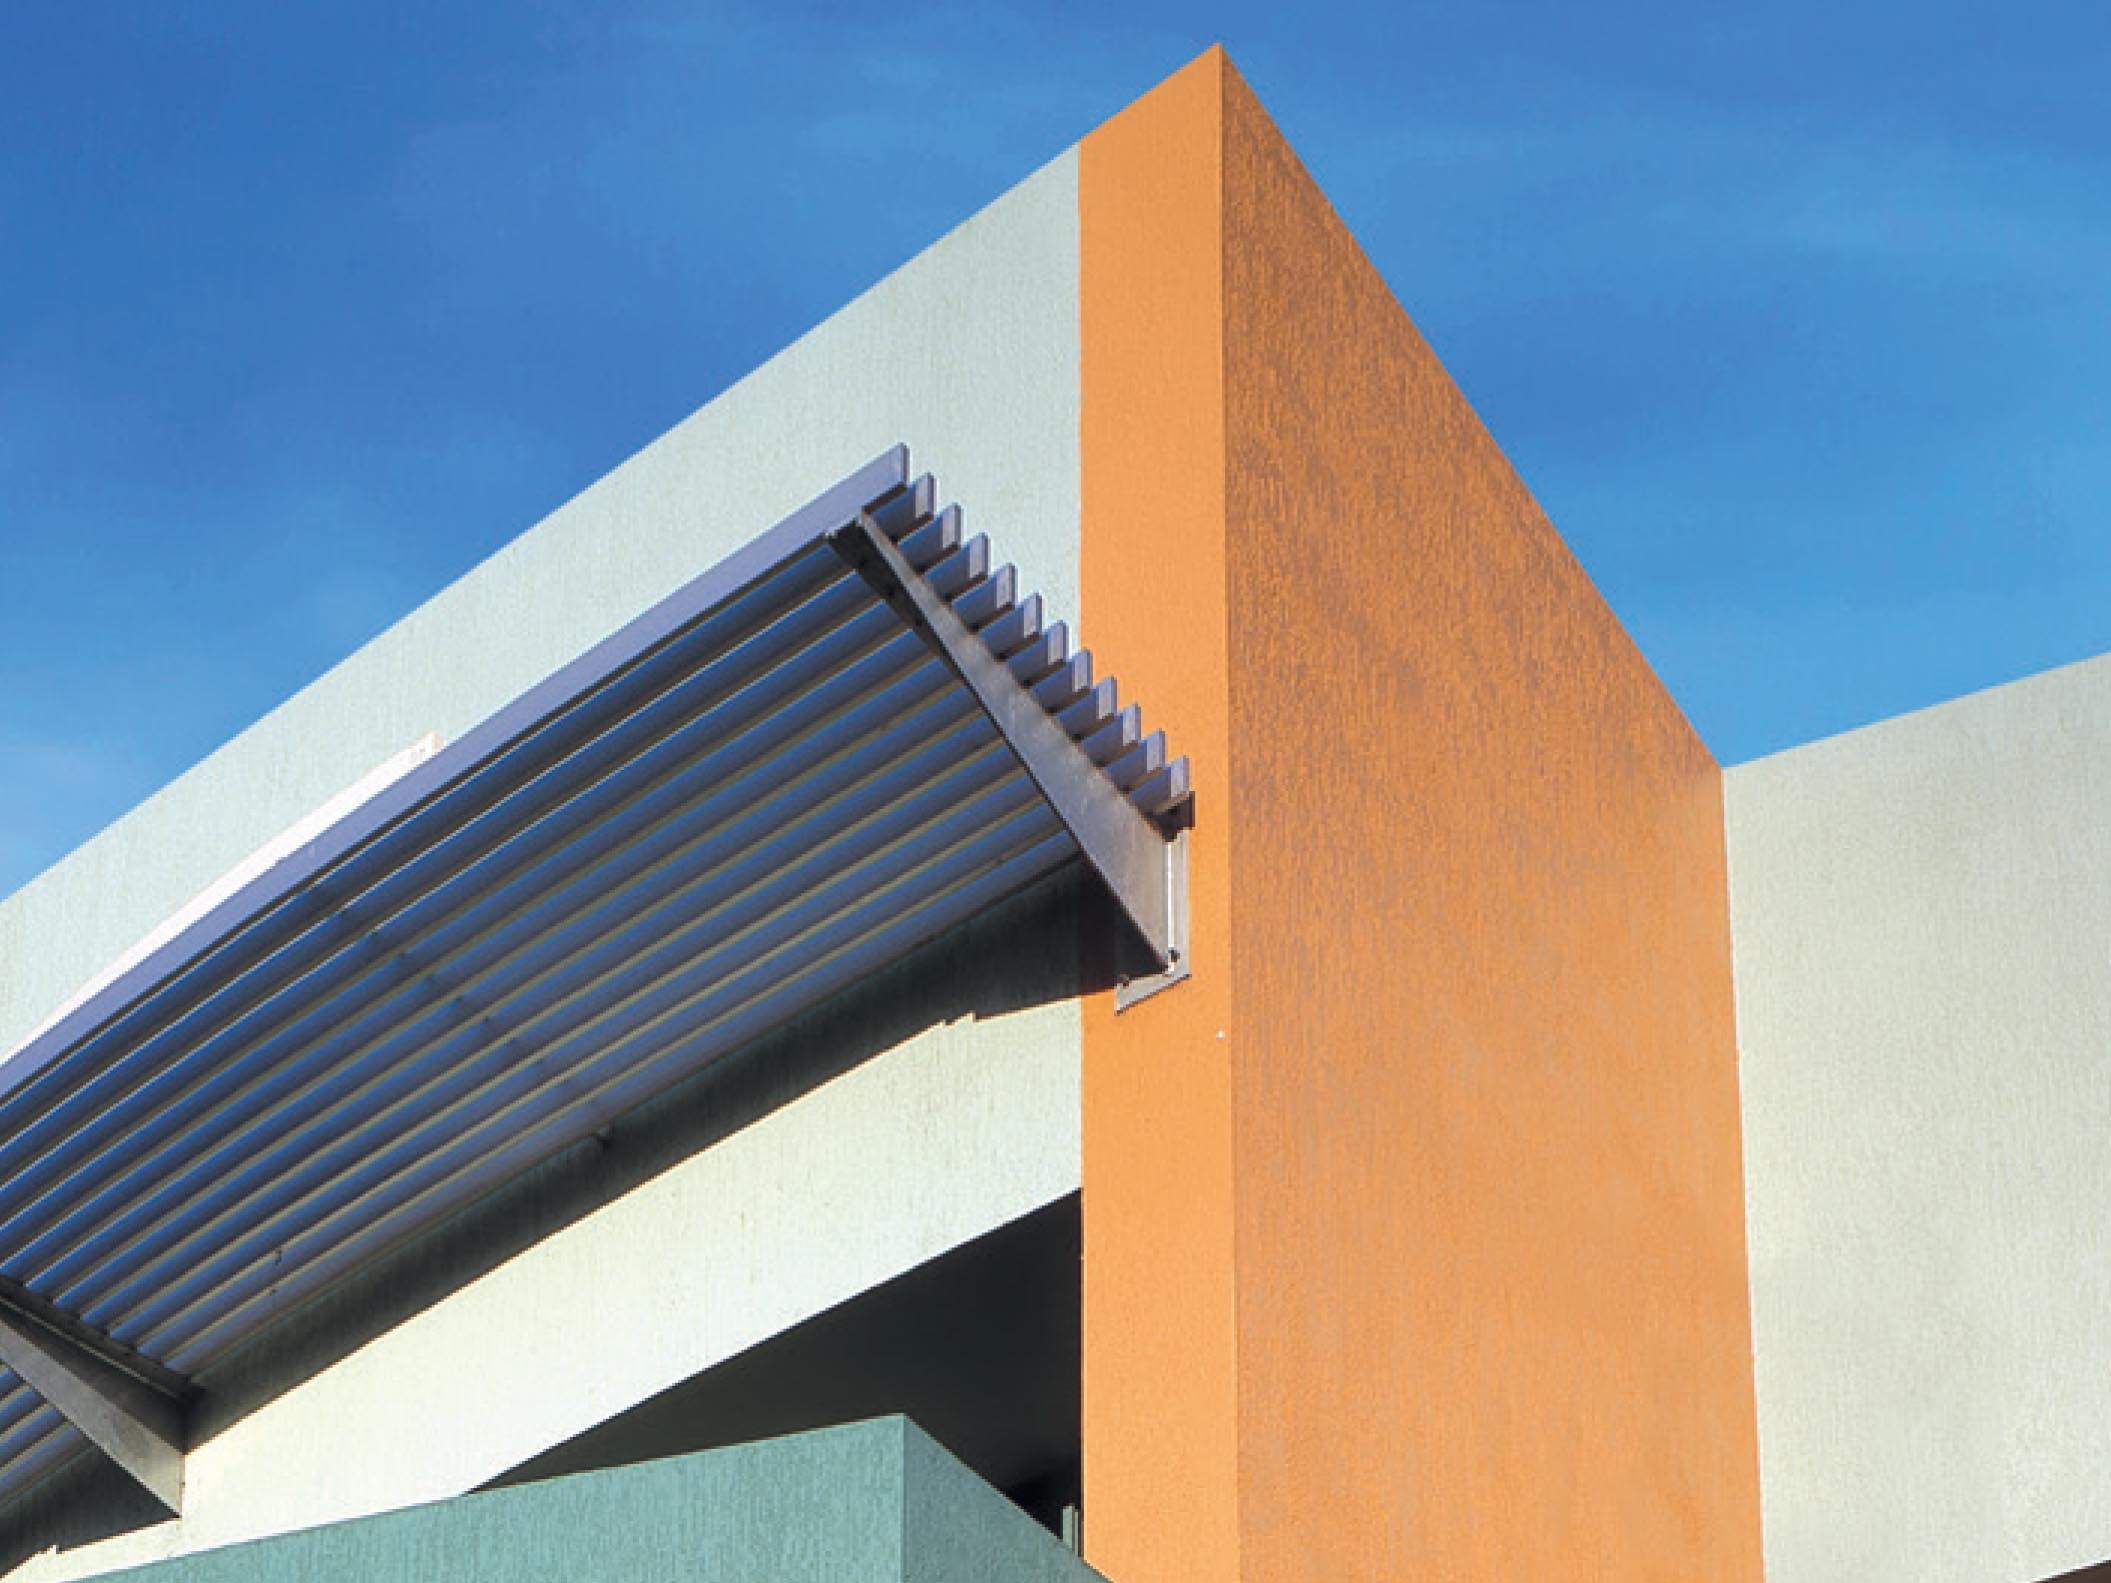 ComTex-facade-panel-and-fixing-system